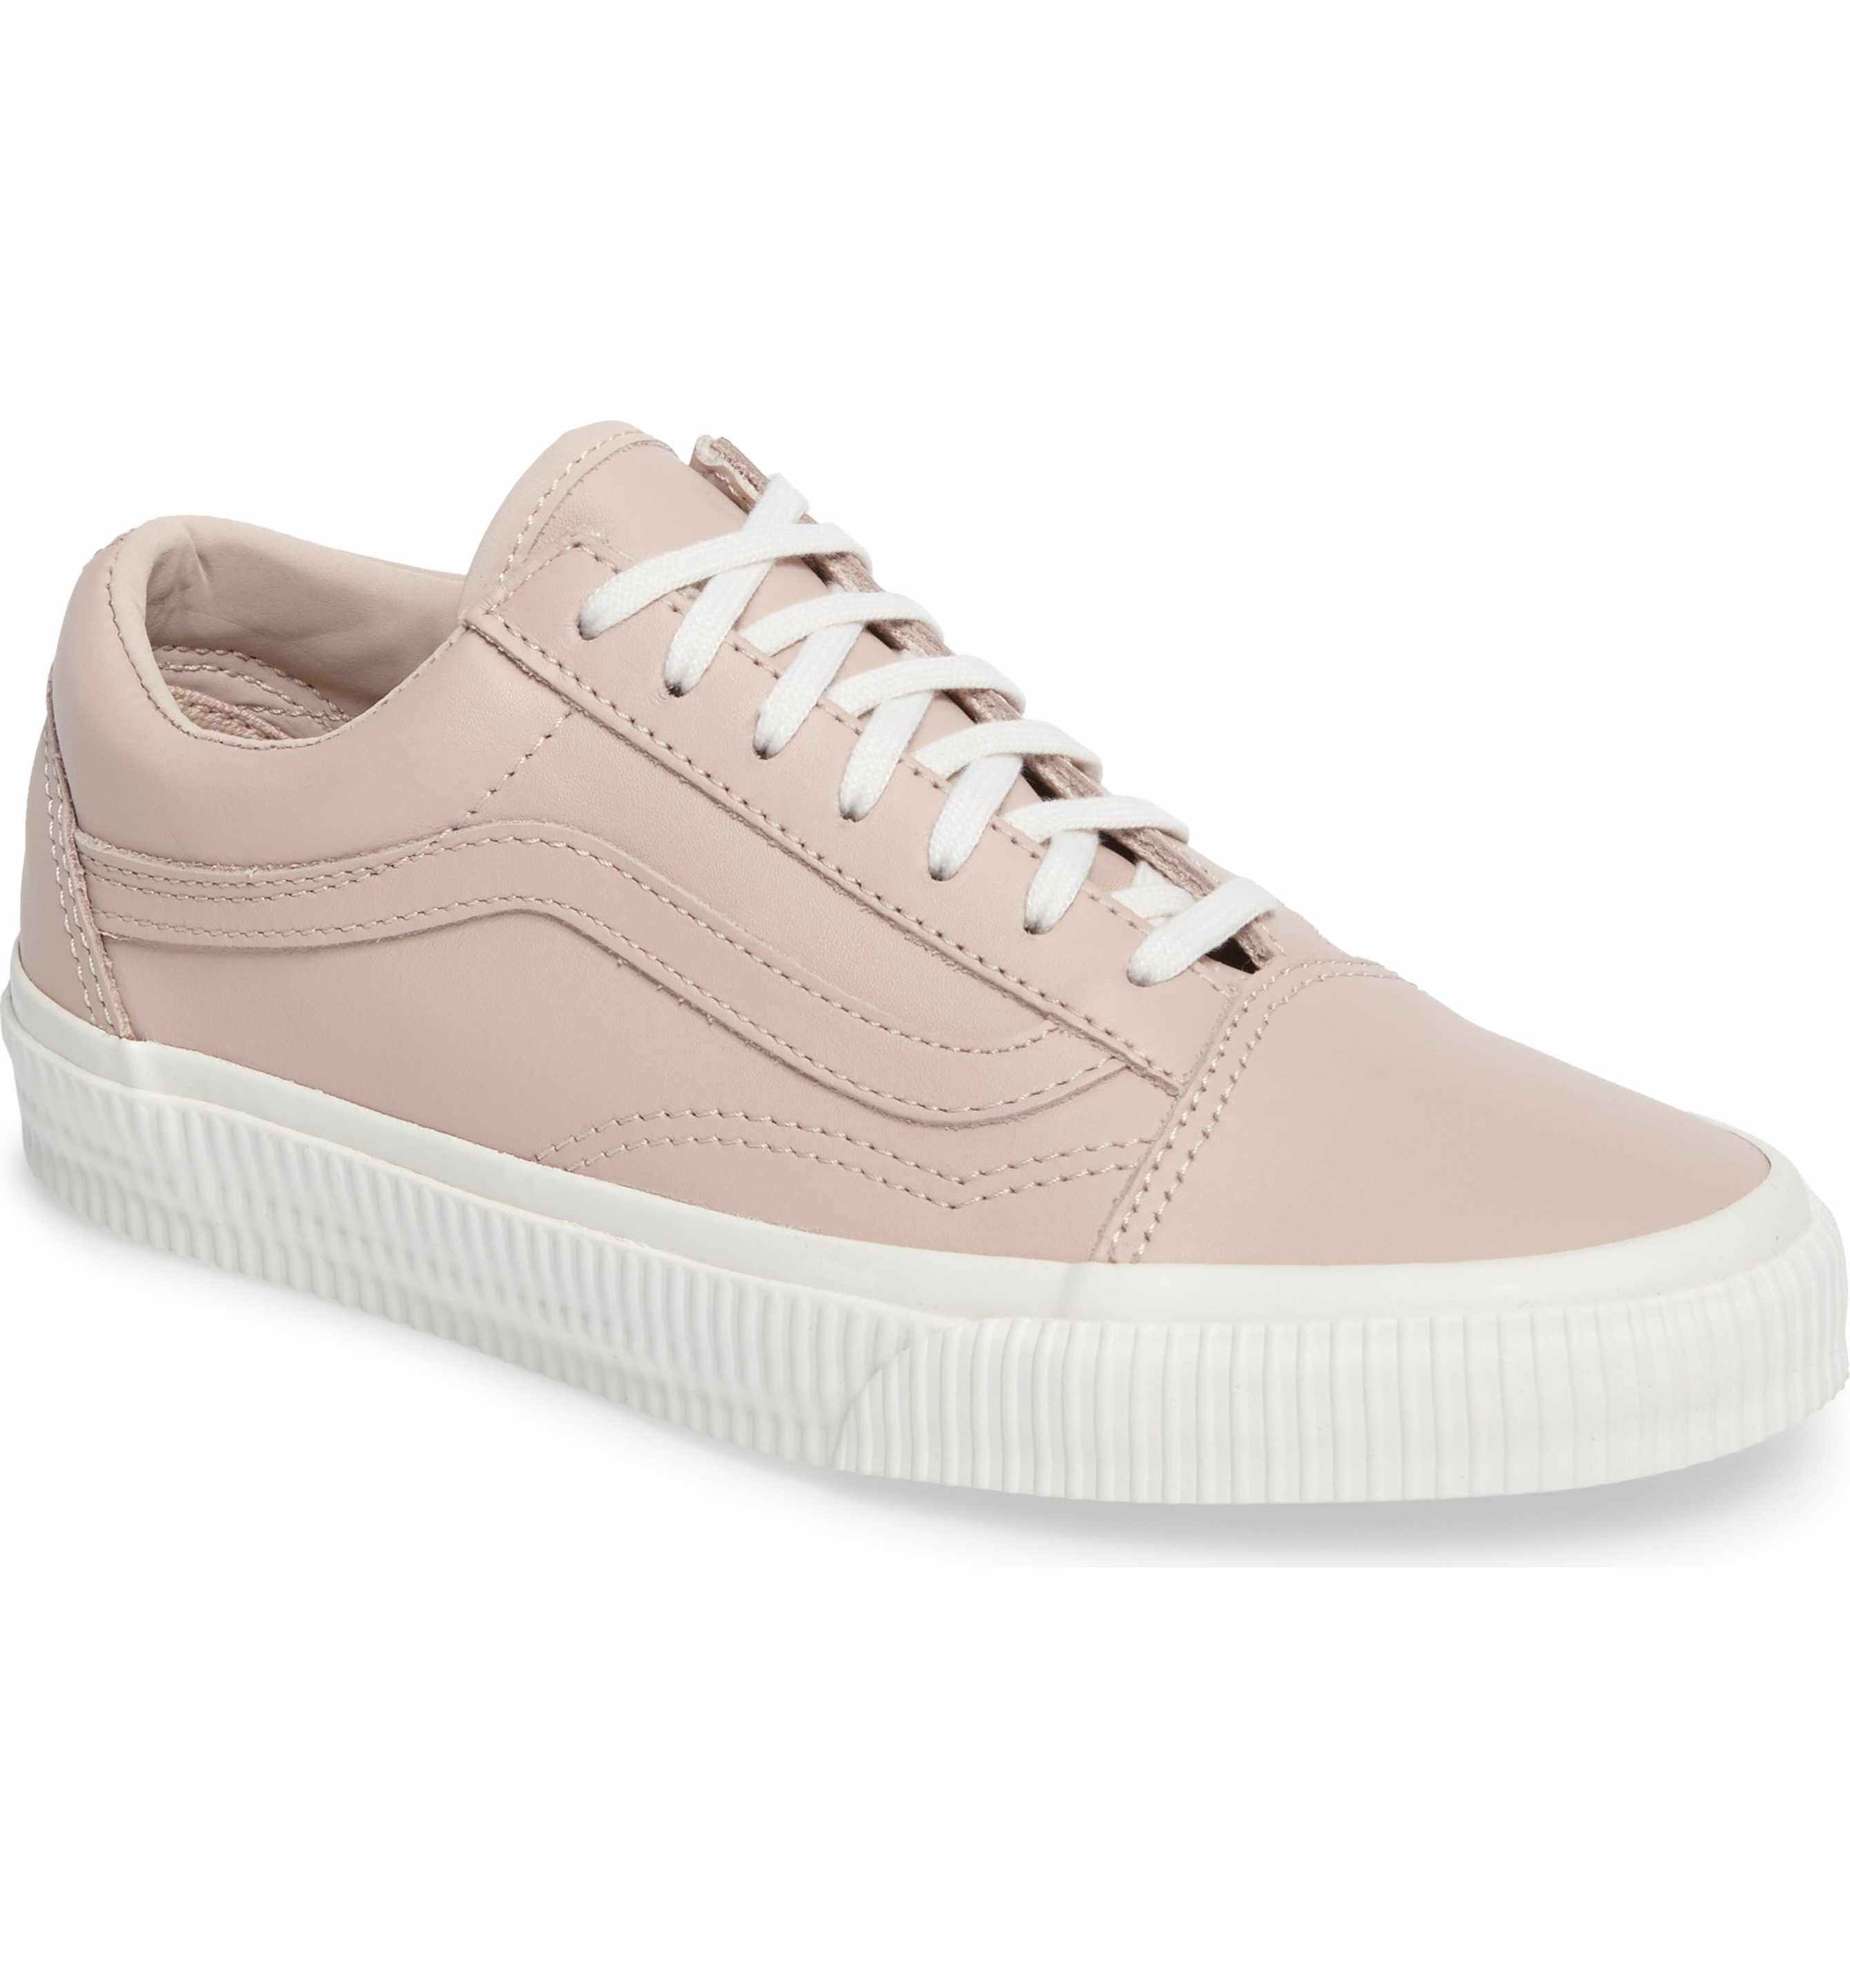 483b274b06 Main Image - Vans Old Skool Sneaker (Women)